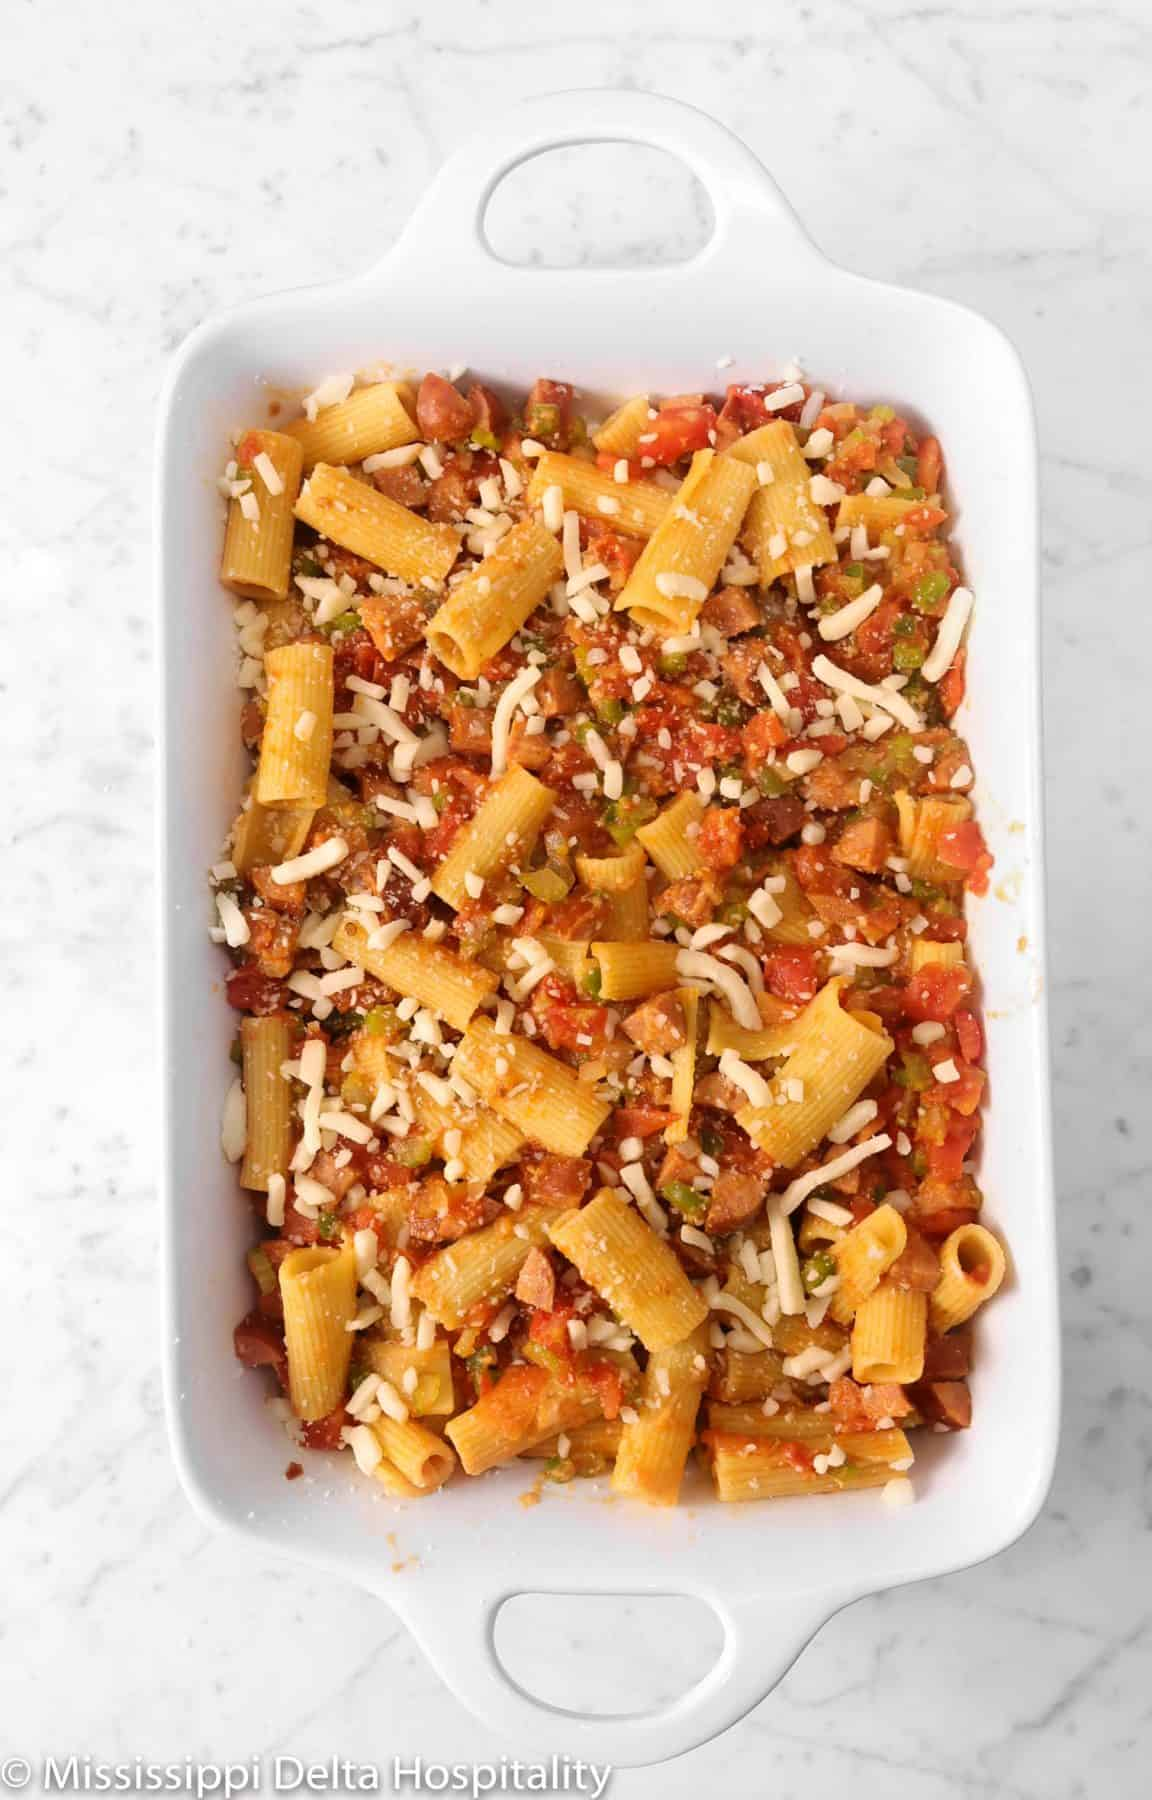 cheese added to rigatoni mixture